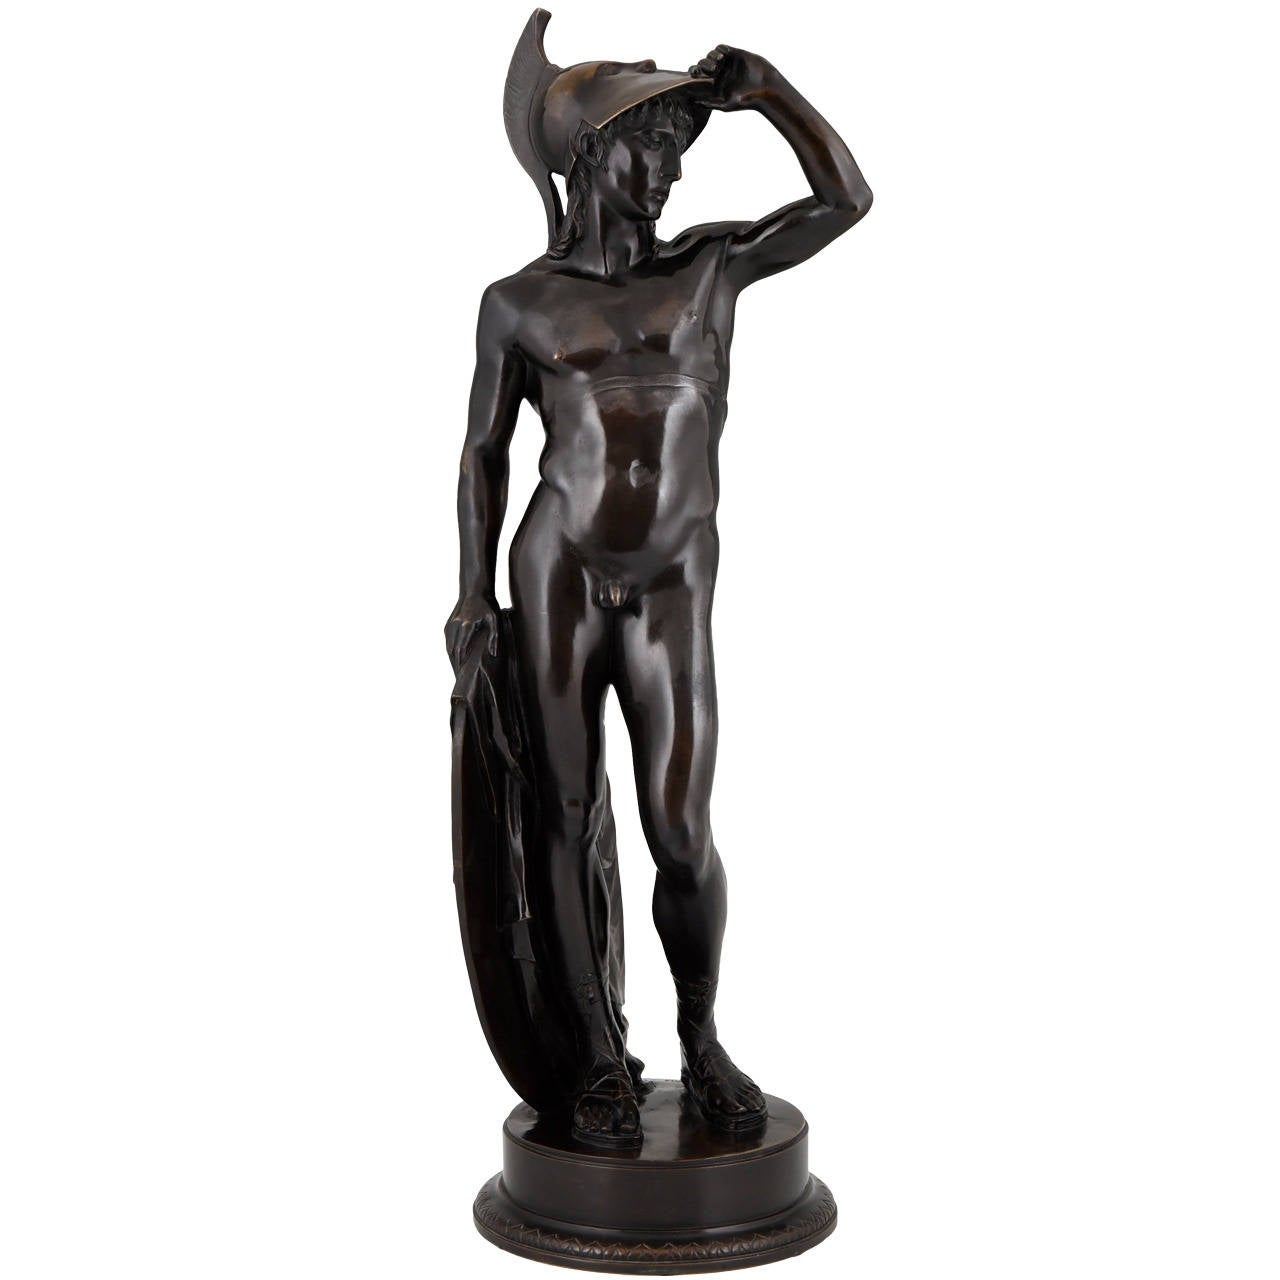 Antique Bronze Sculpture of a Male Nude by Alfred Raum, Rome, 1903 For Sale